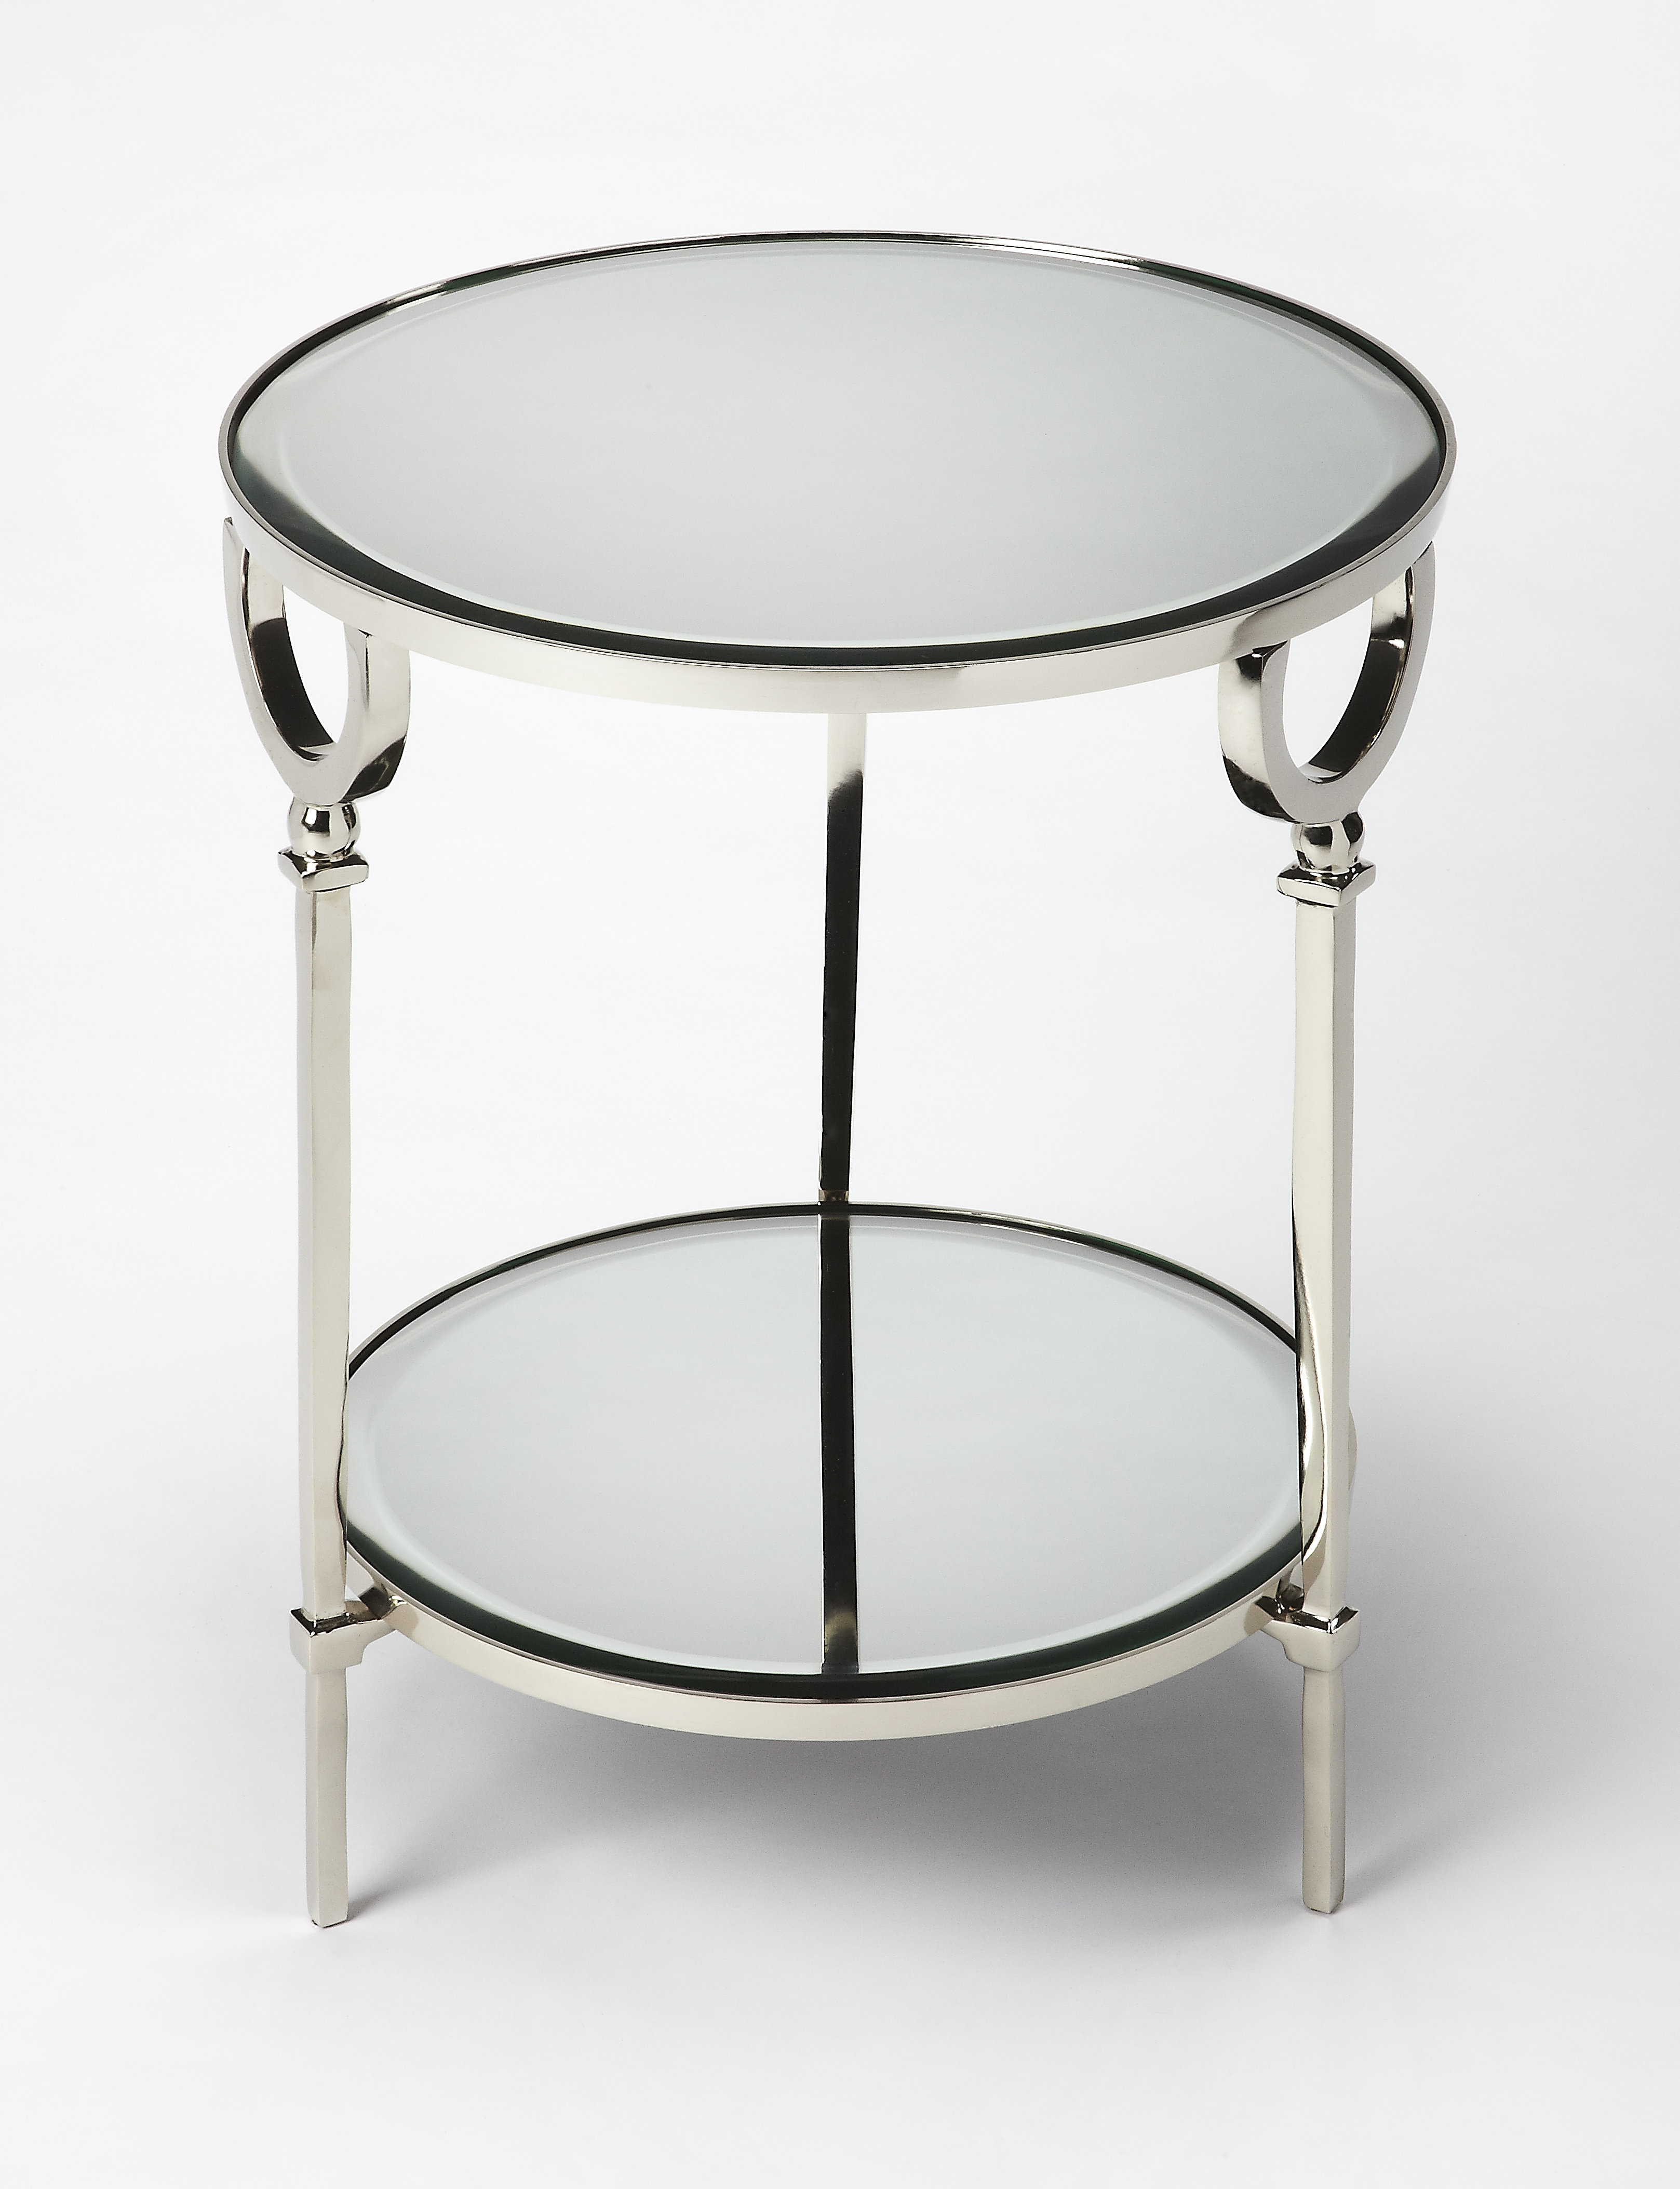 orren ellis corlett end table avalon round accent wedge shaped side navy blue console asian style lamps inch aluminium outdoor furniture silver mirrored ethan allen ballan coffee